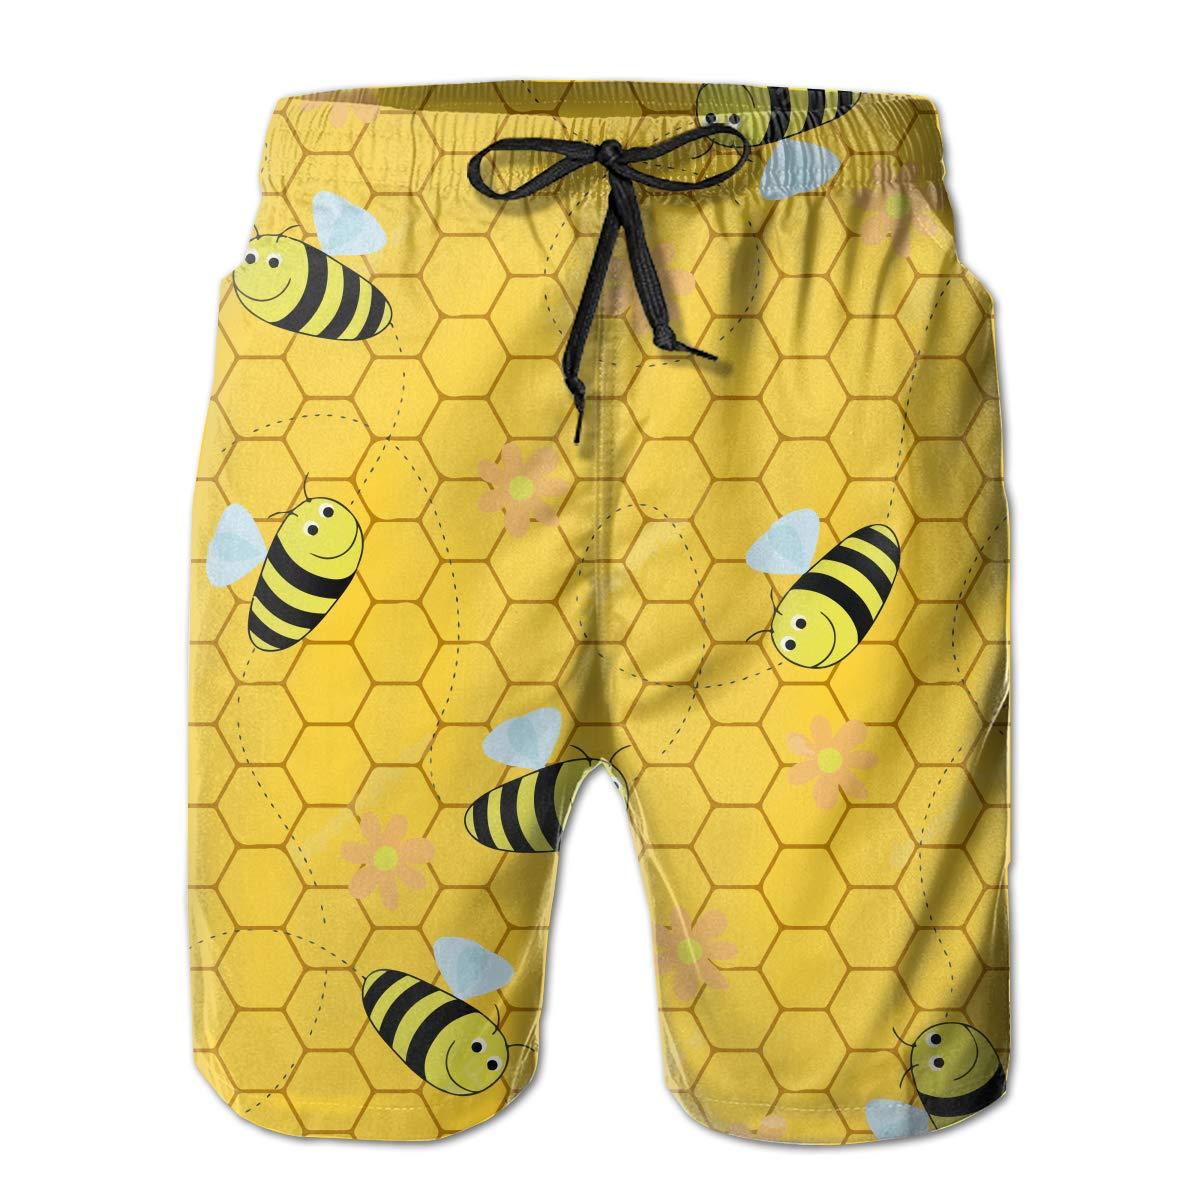 MikonsuBees Honeybees Honeycomb Cute Beehive Mens Colorful Swim Trunks Beach Board Shorts with Lining